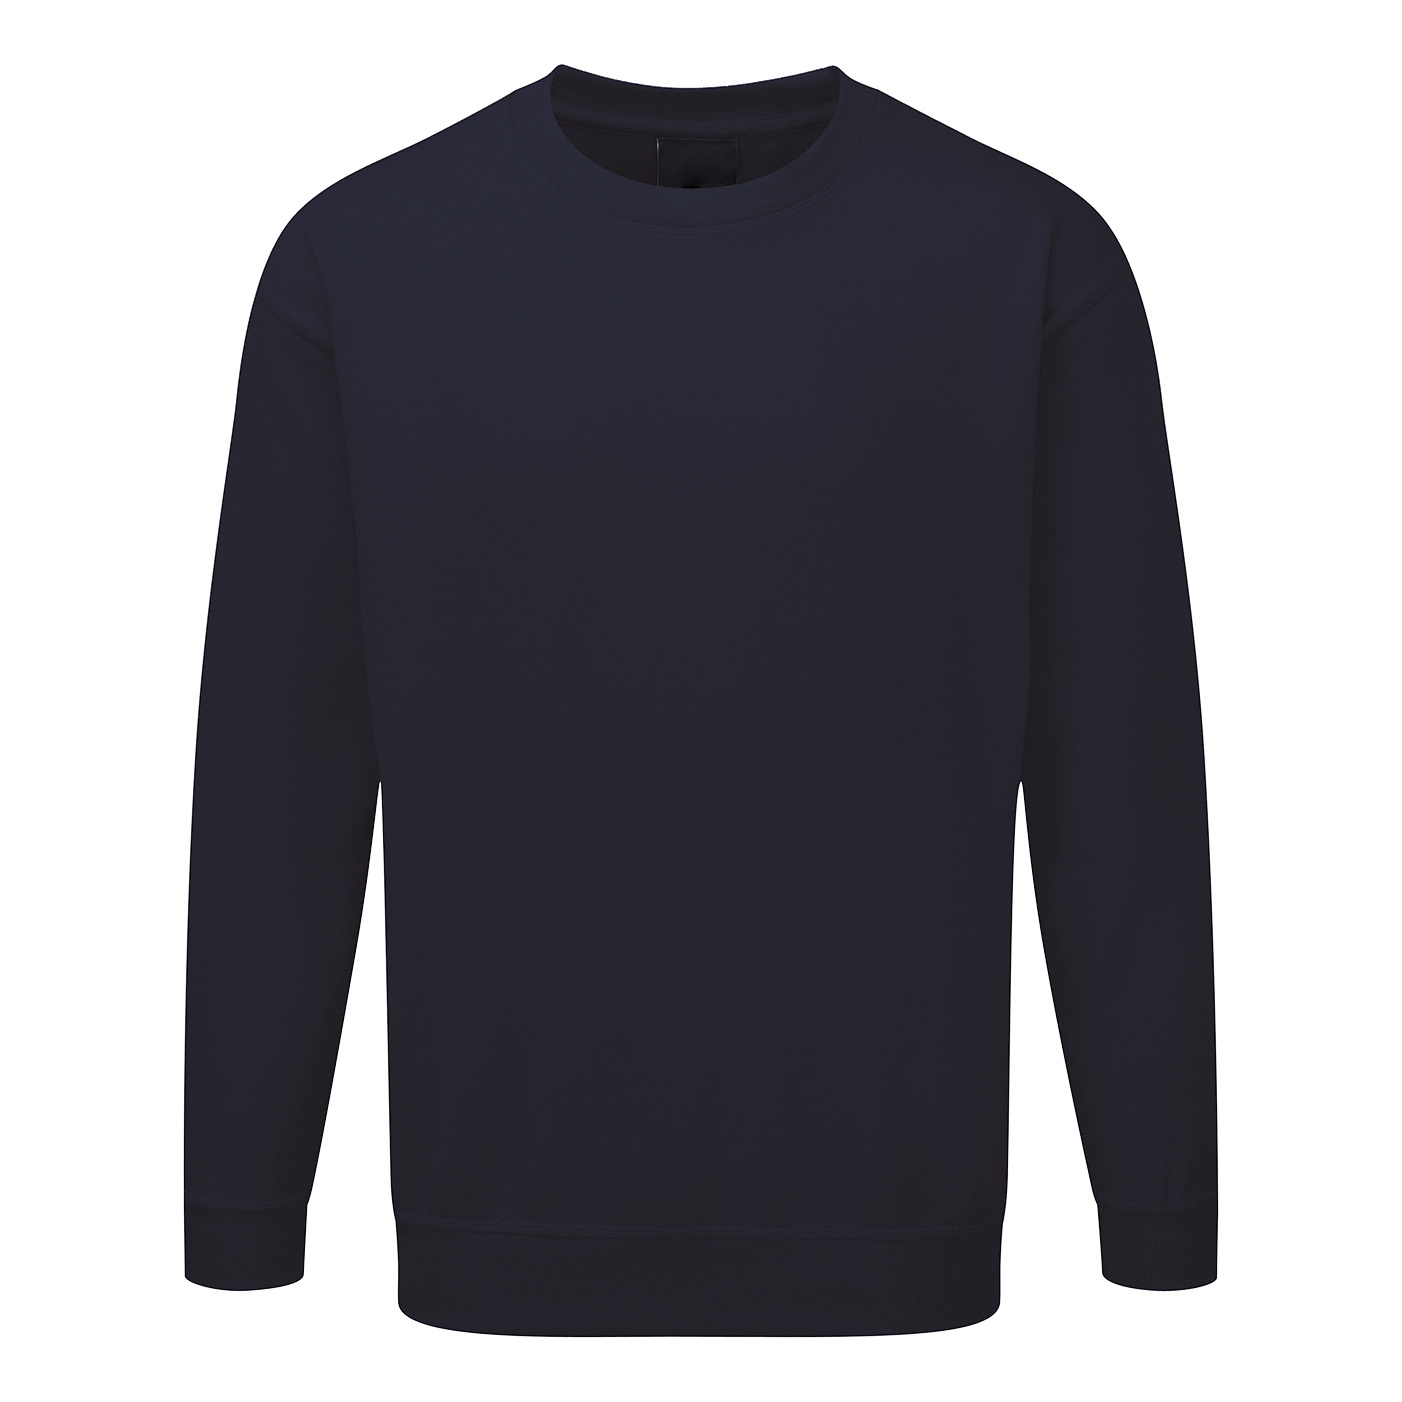 Sweatshirts / Jumpers / Hoodies Click Workwear Sweatshirt Polycotton 300gsm Small Navy Blue Ref CLPCSNS *1-3 Days Lead Time*